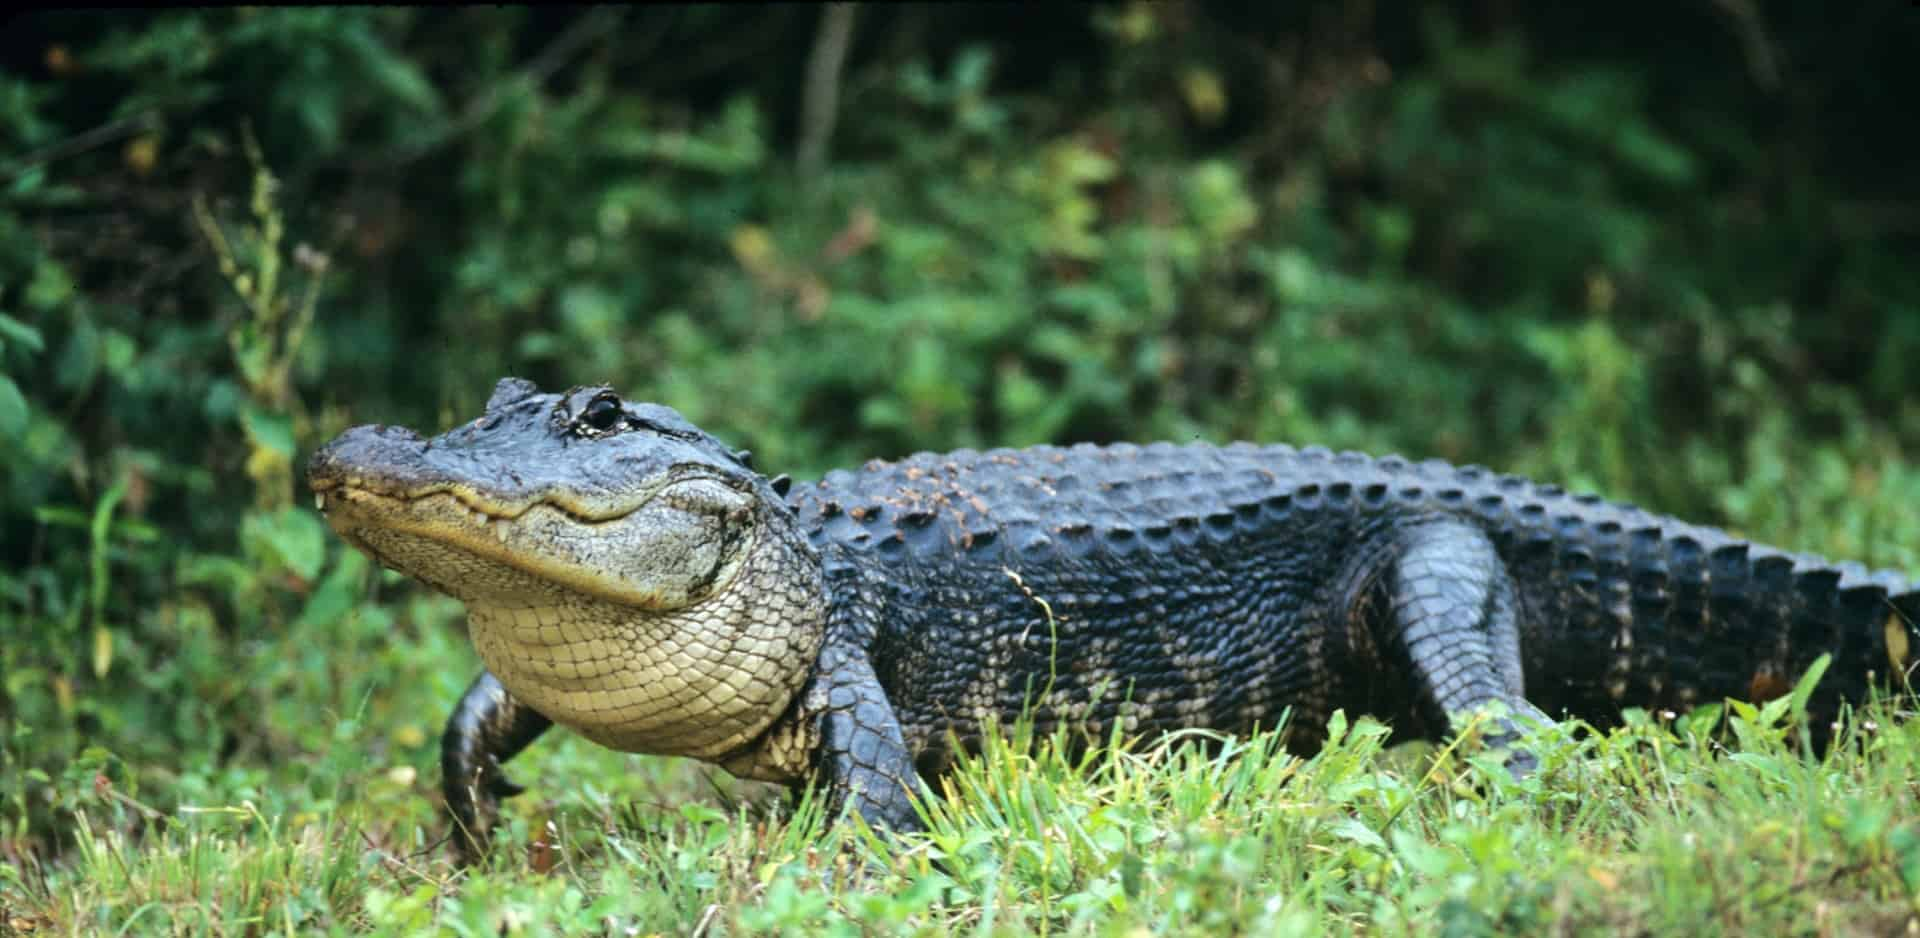 What are the Interesting facts on Alligator?